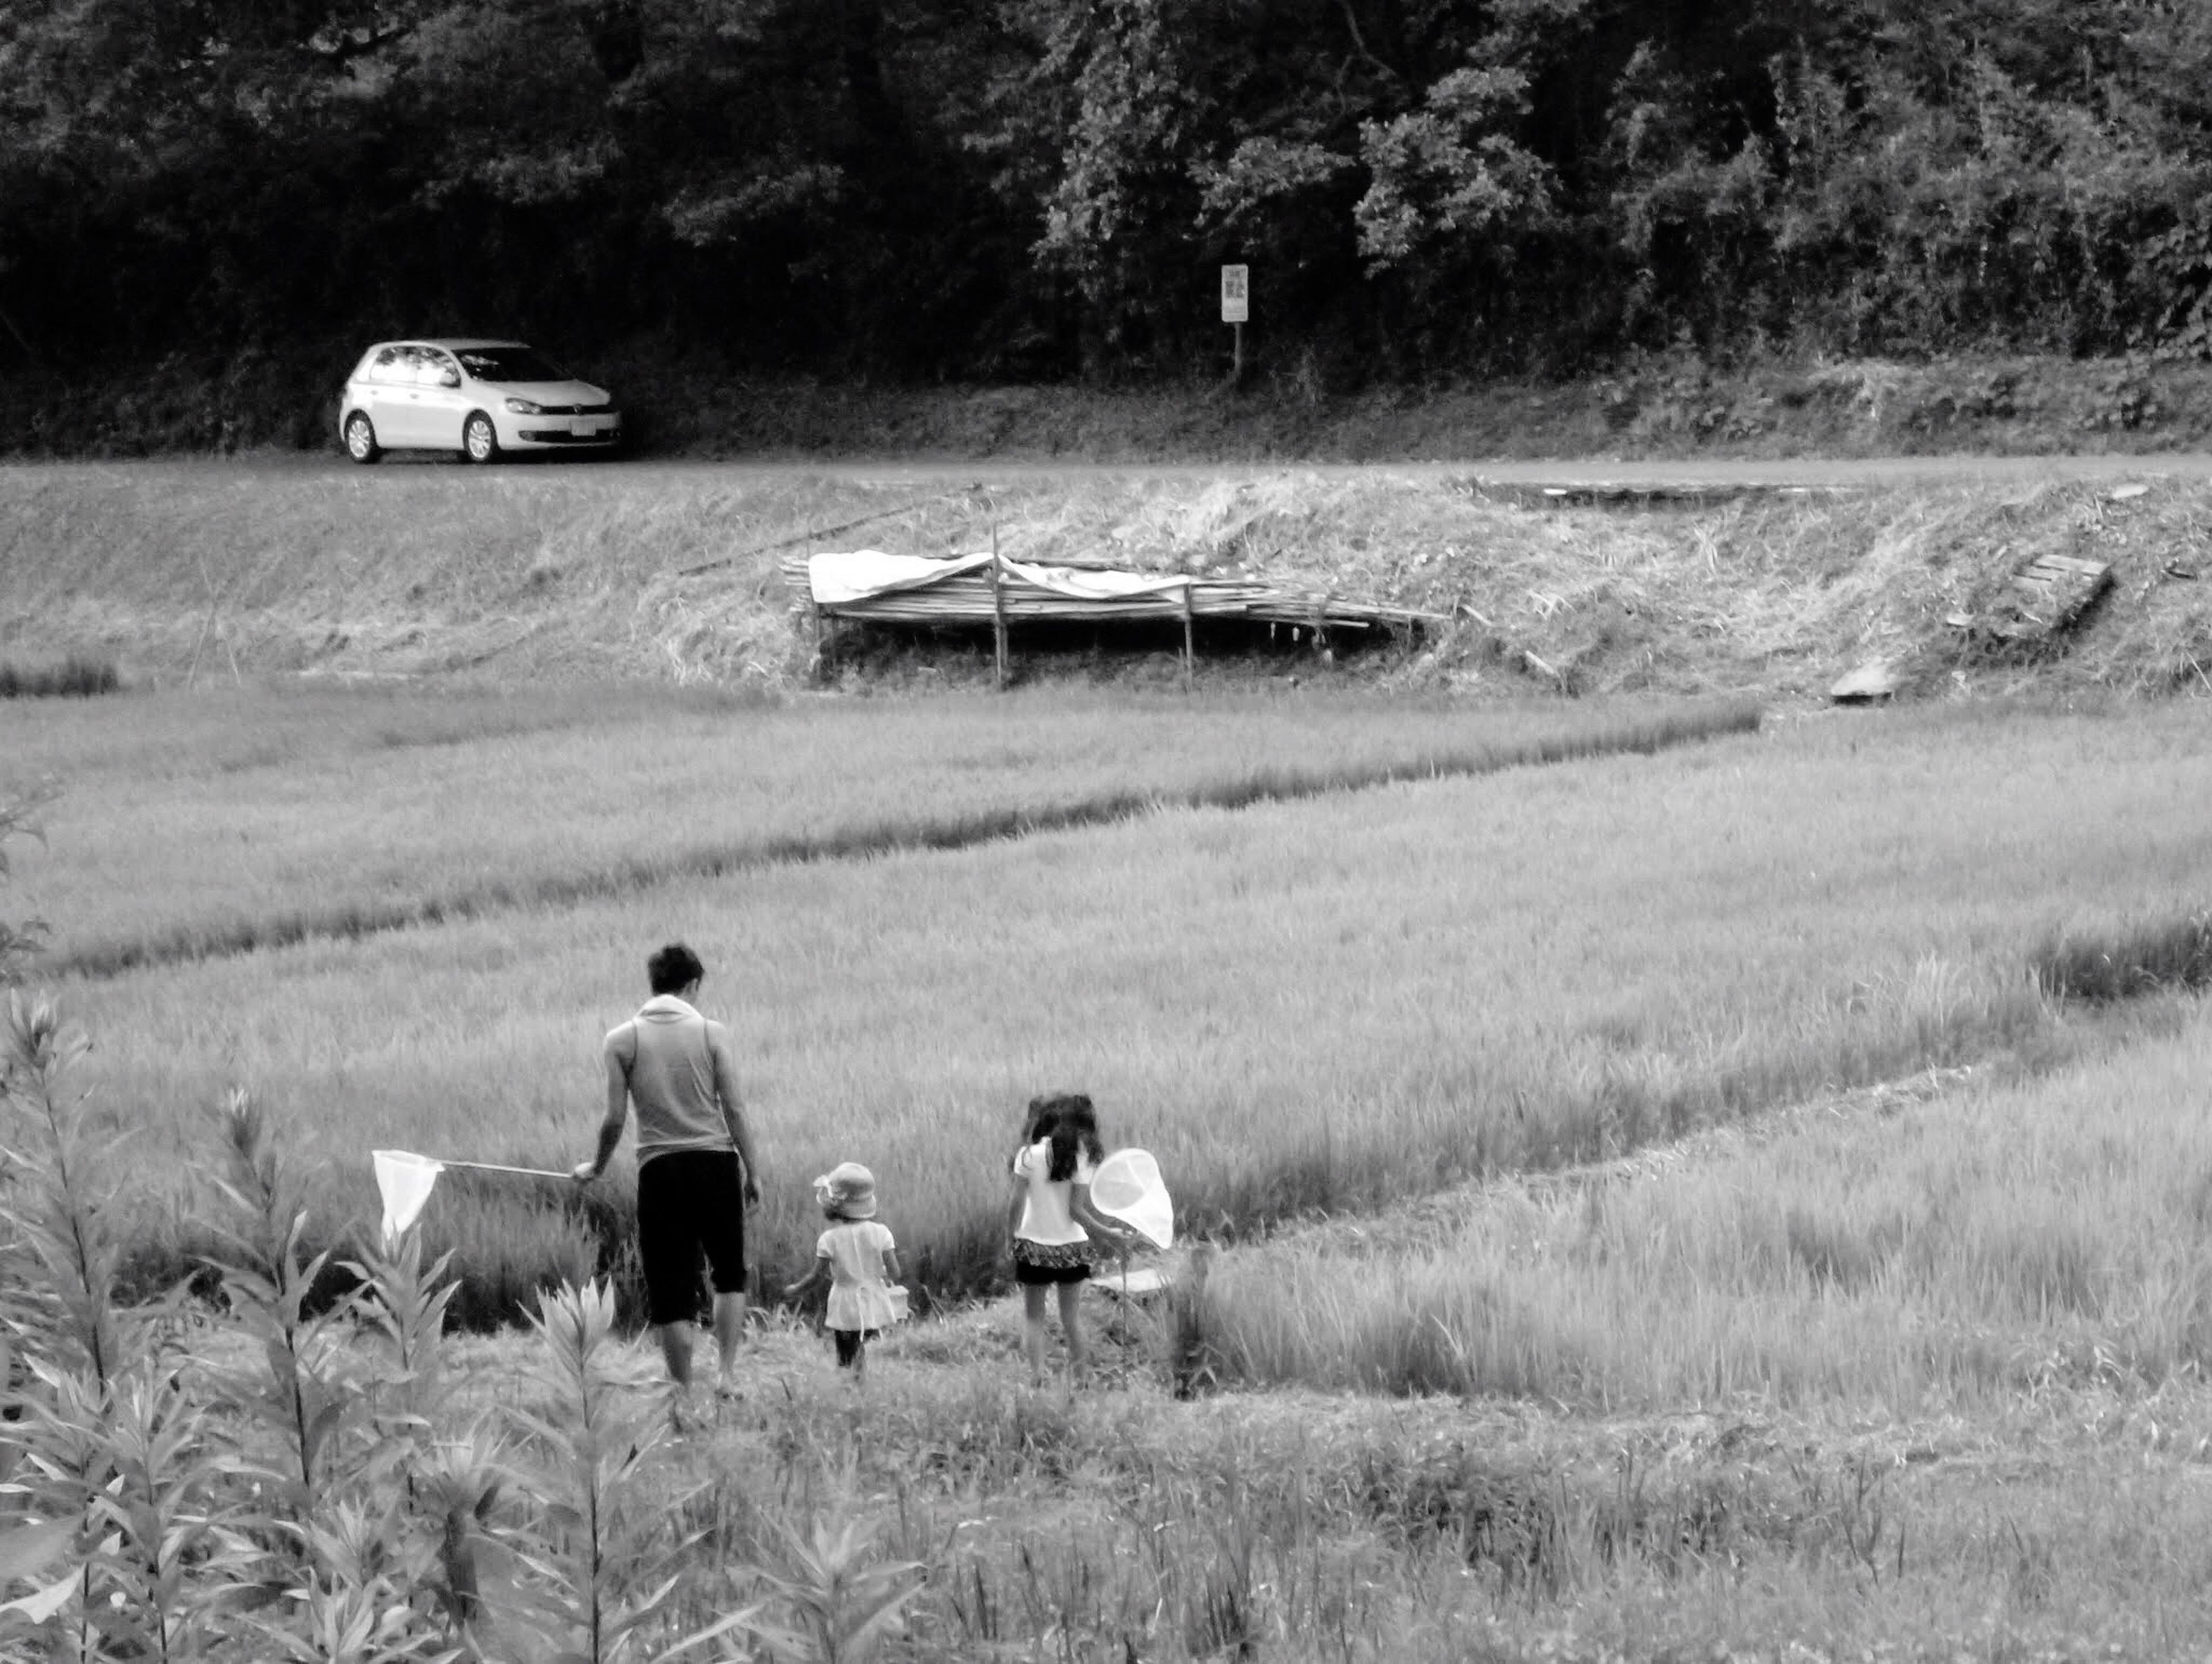 field, agriculture, farm, child, real people, rear view, nature, working, rural scene, landscape, growth, childhood, occupation, men, outdoors, day, one person, adult, people